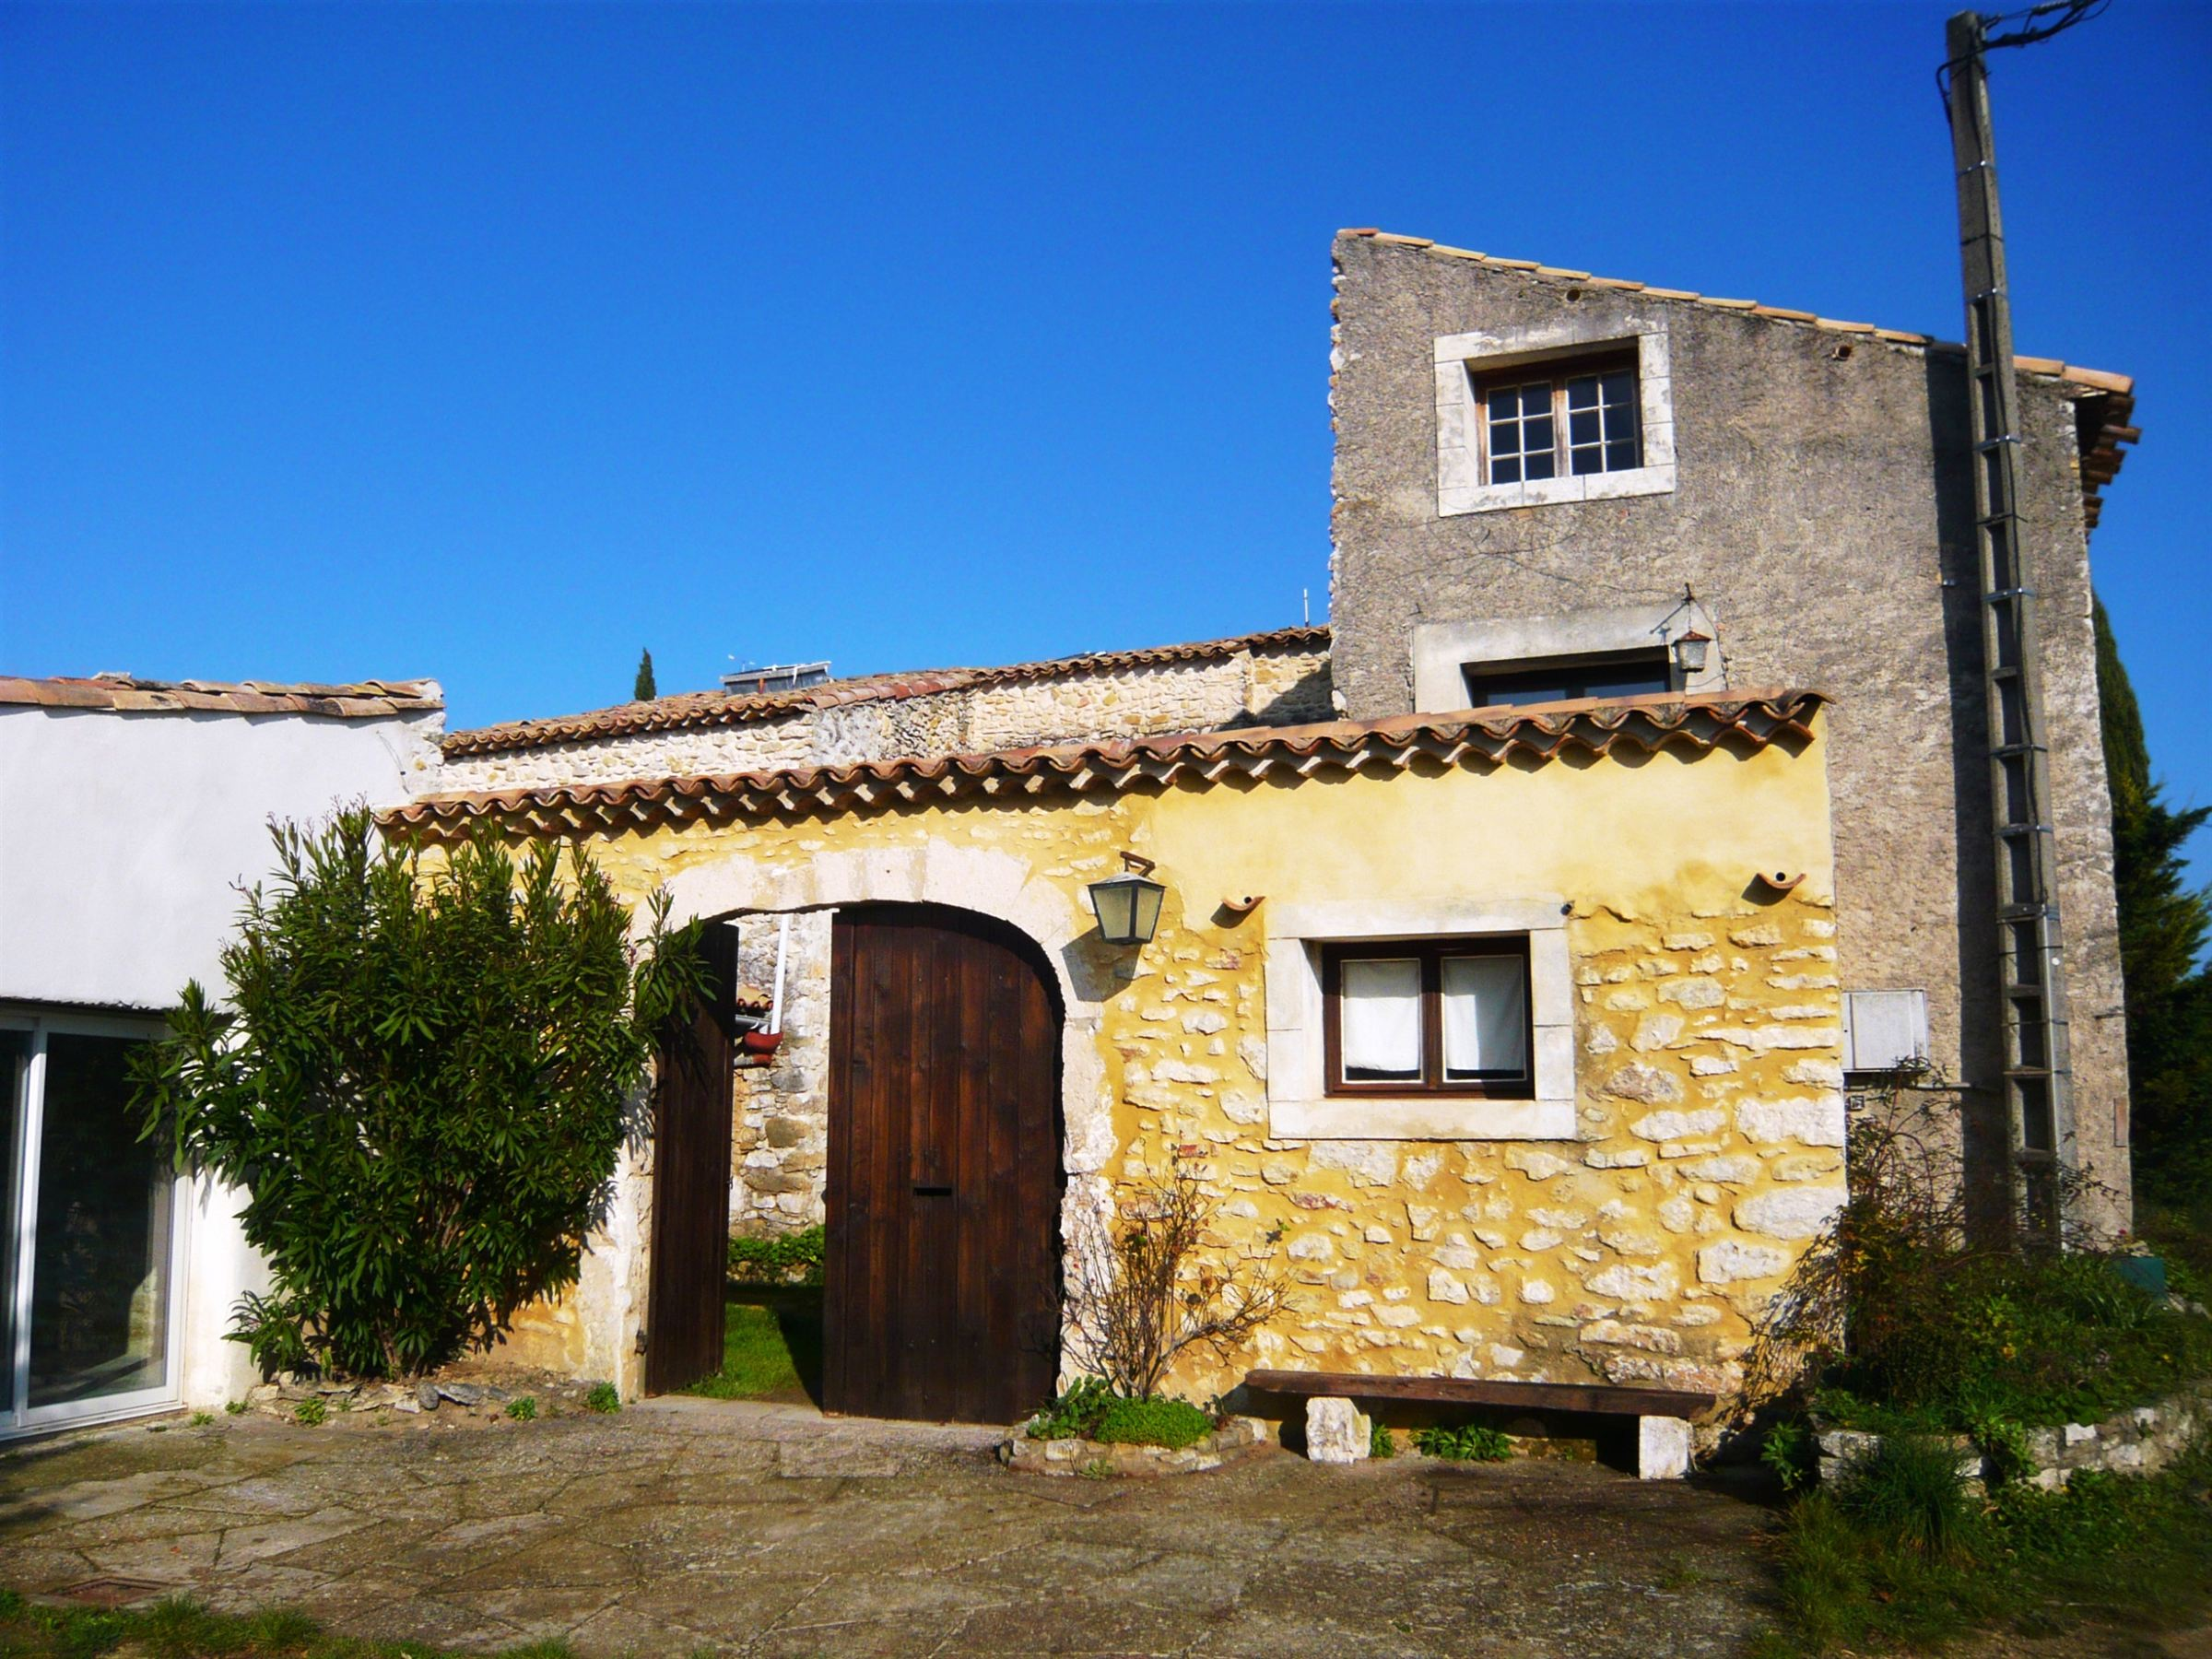 Single Family Home for Sale at House Other Languedoc-Roussillon, Languedoc-Roussillon 30130 France